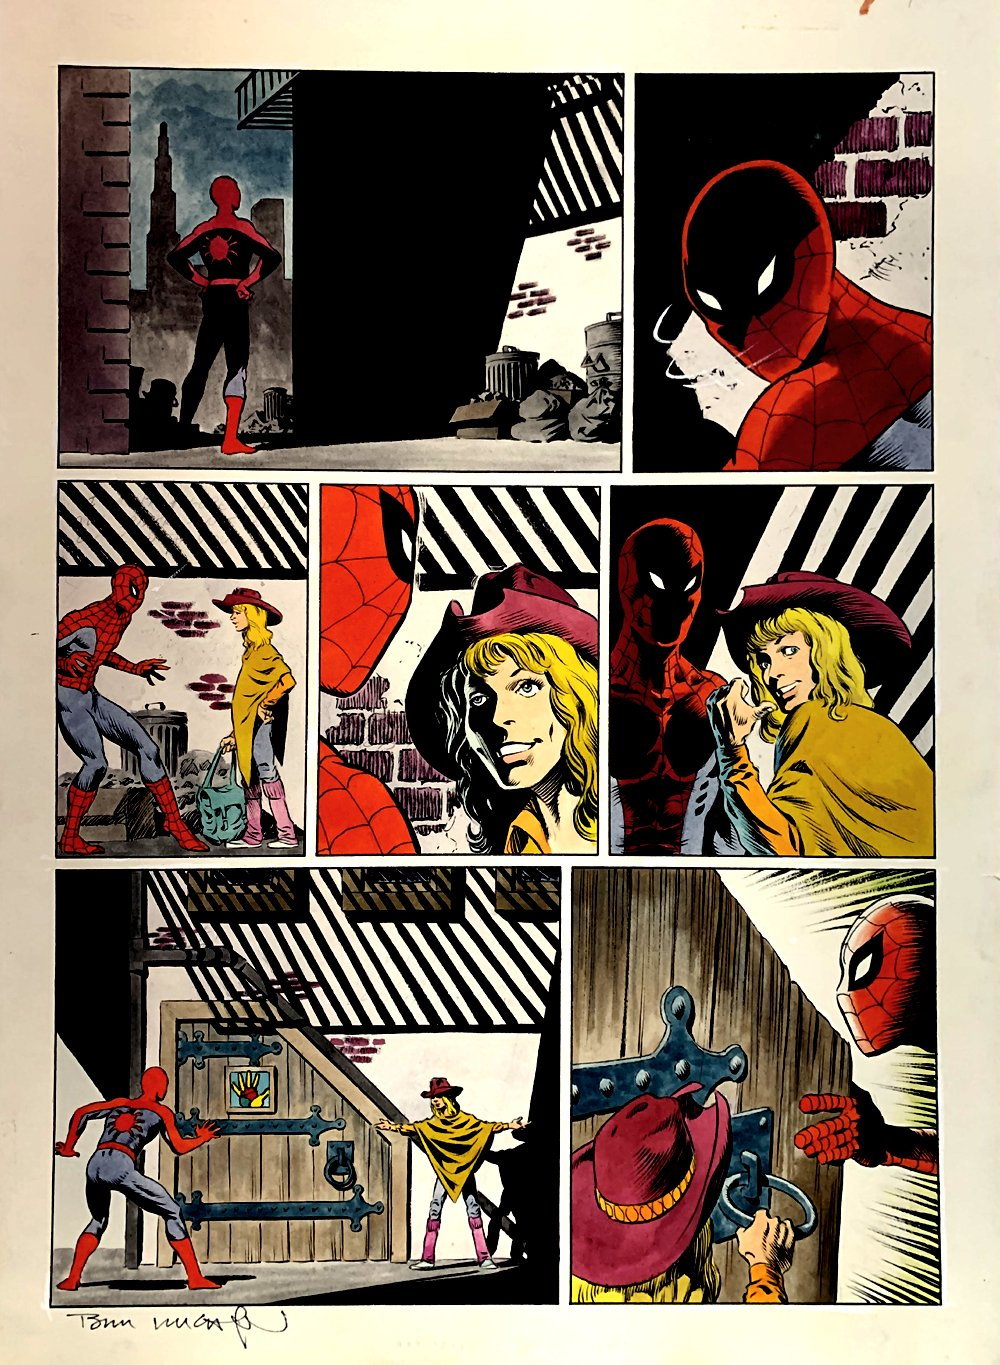 Amazing Spider-Man: Hooky Marvel Graphic Novel Page 7 Painting (SPIDER-MAN IN EVERY PANEL!) Large Art - 1986